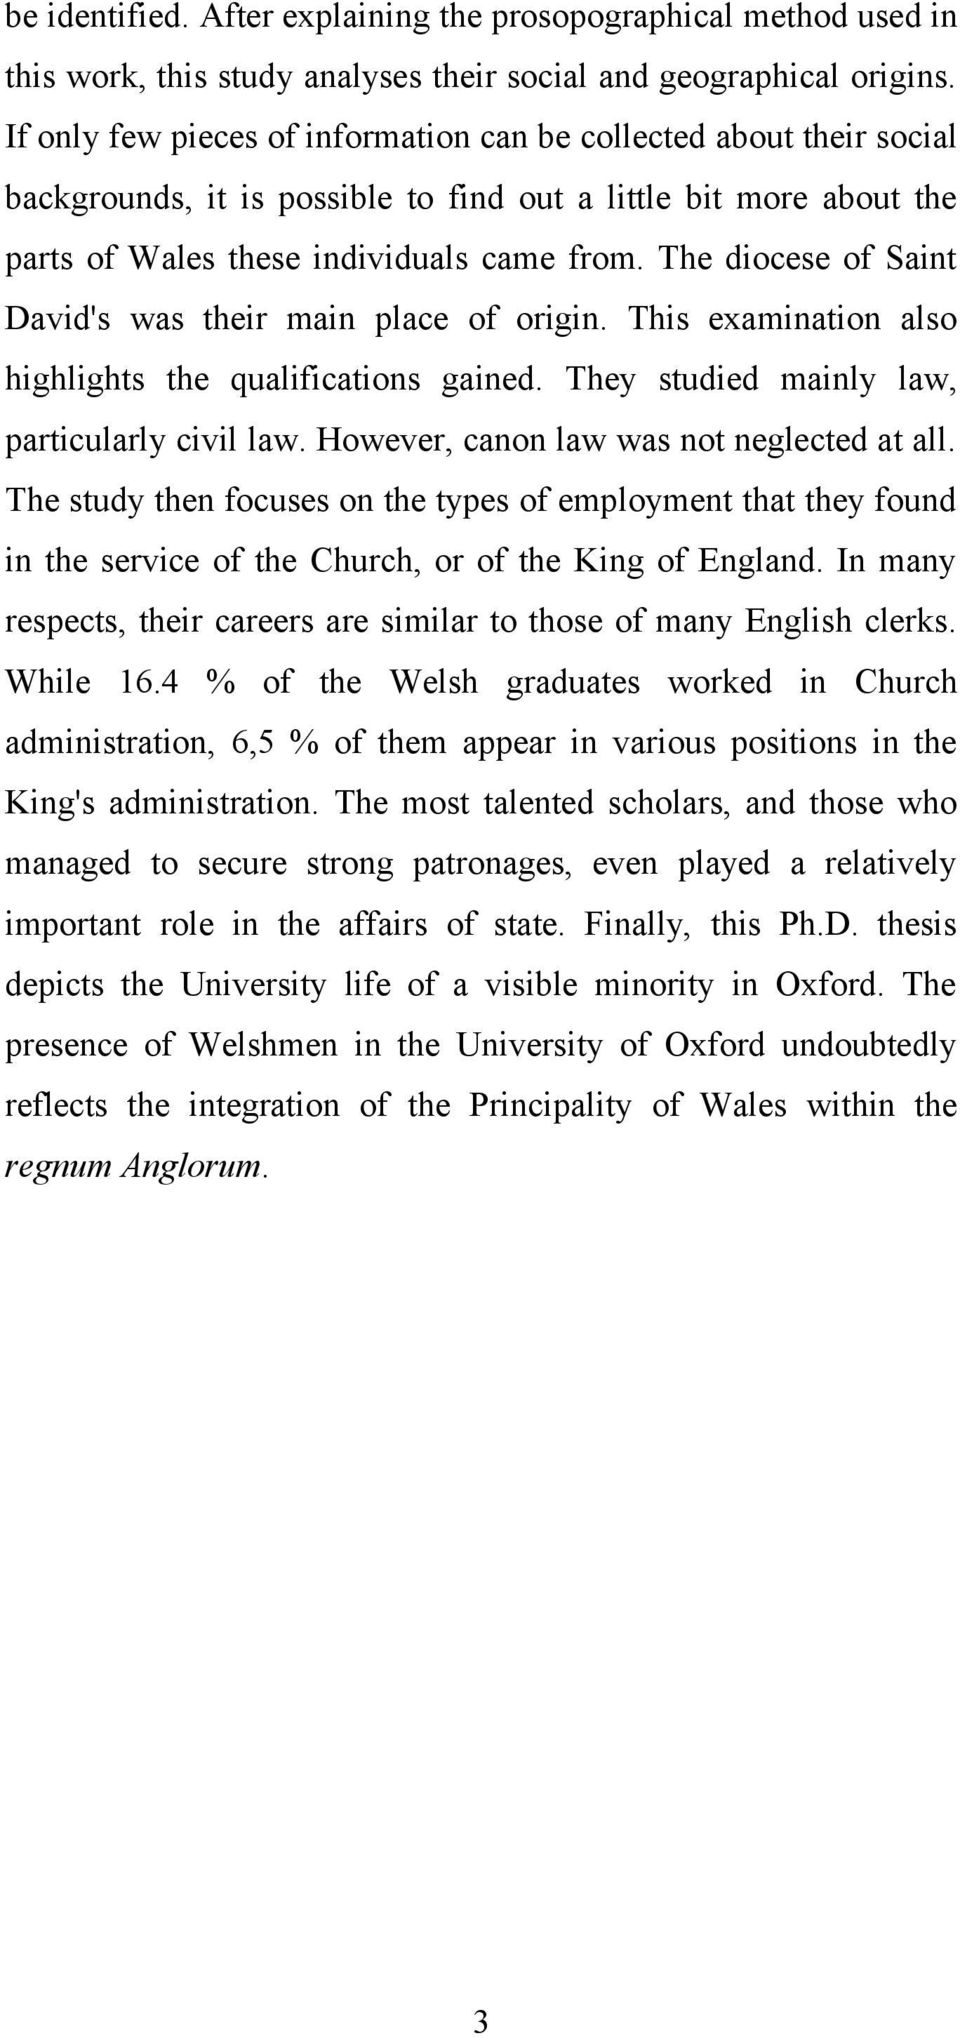 The diocese of Saint David's was their main place of origin. This examination also highlights the qualifications gained. They studied mainly law, particularly civil law.